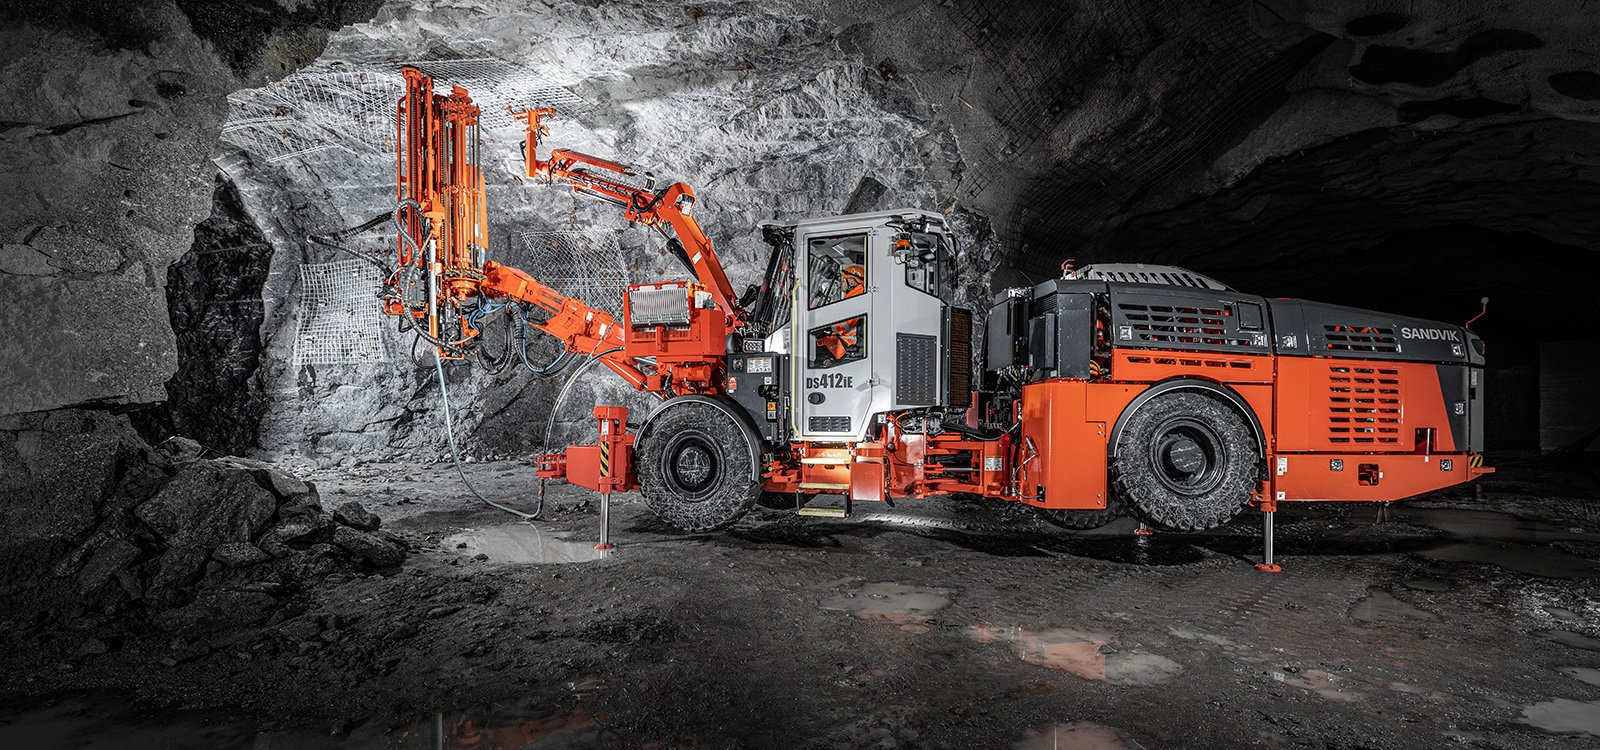 With upgraded drill control and many other improvements, Sandvik DS412iE supplies customers with more productive rock reinforcement drilling along with